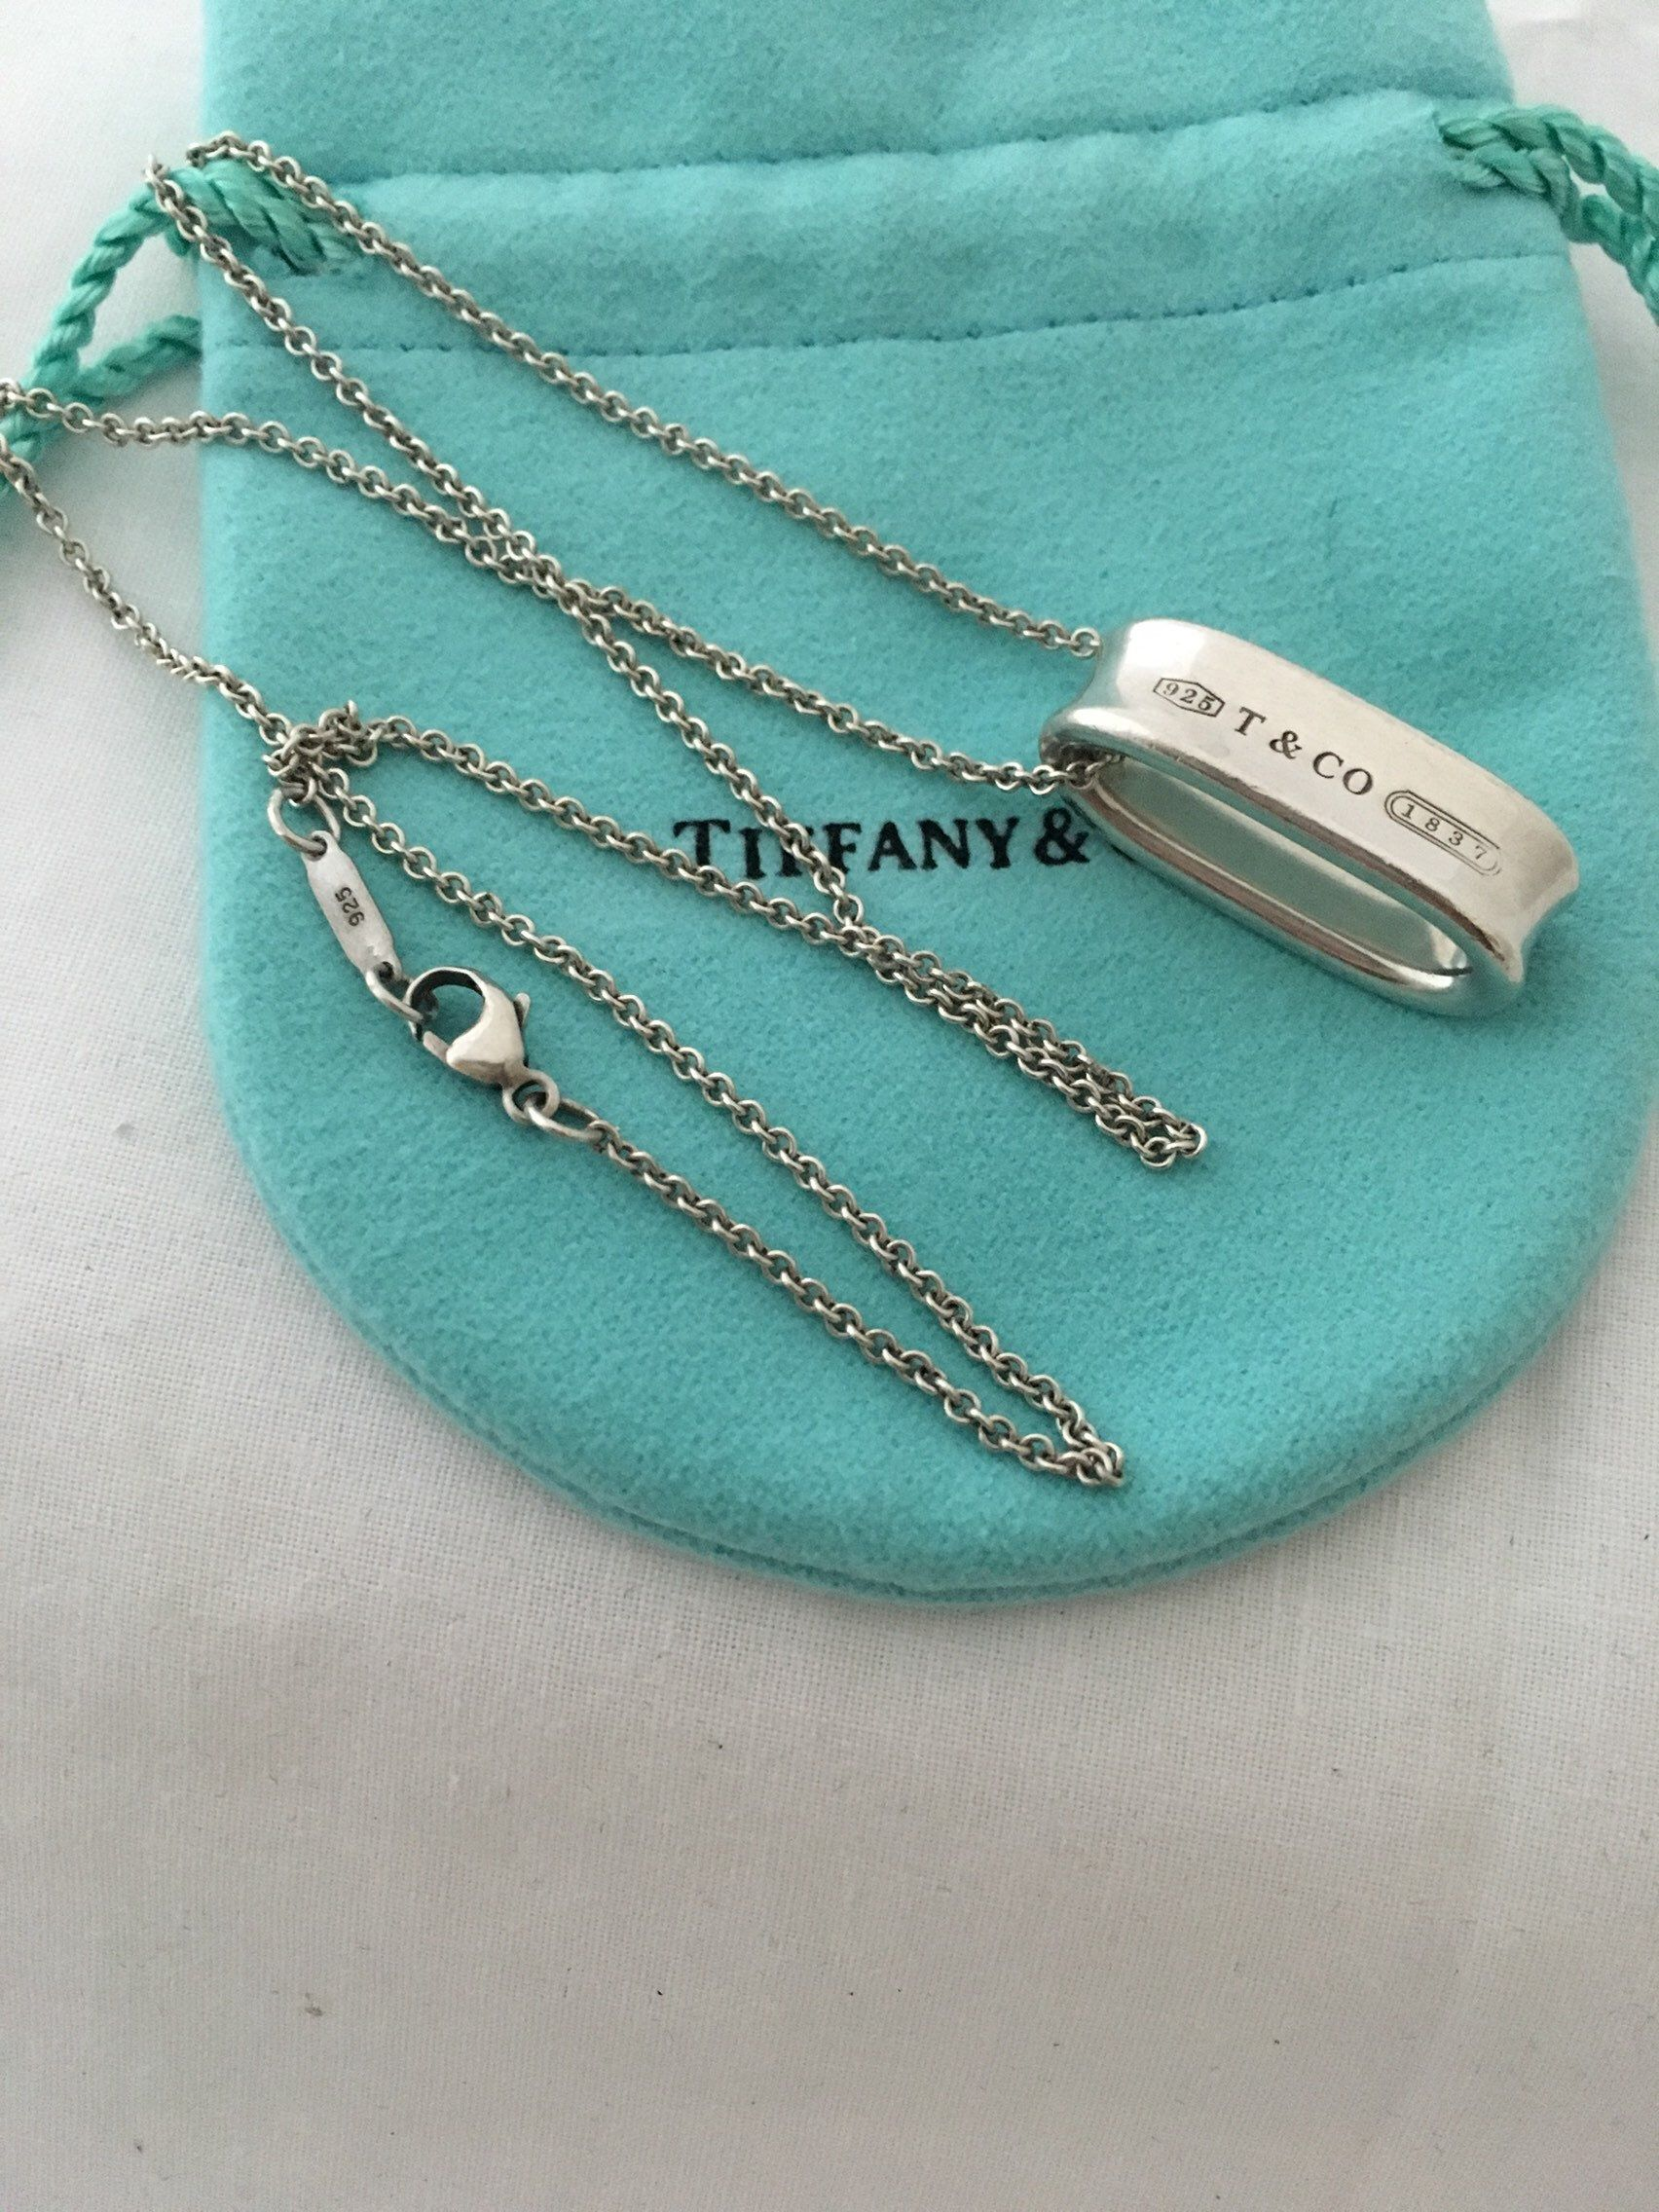 4faee6ce6 Excited to share the latest addition to my #etsy shop: Tiffany and Co 925  Authentic Sterling Silver Chain Necklace Oval Concave Loop Pendant Chain 18""